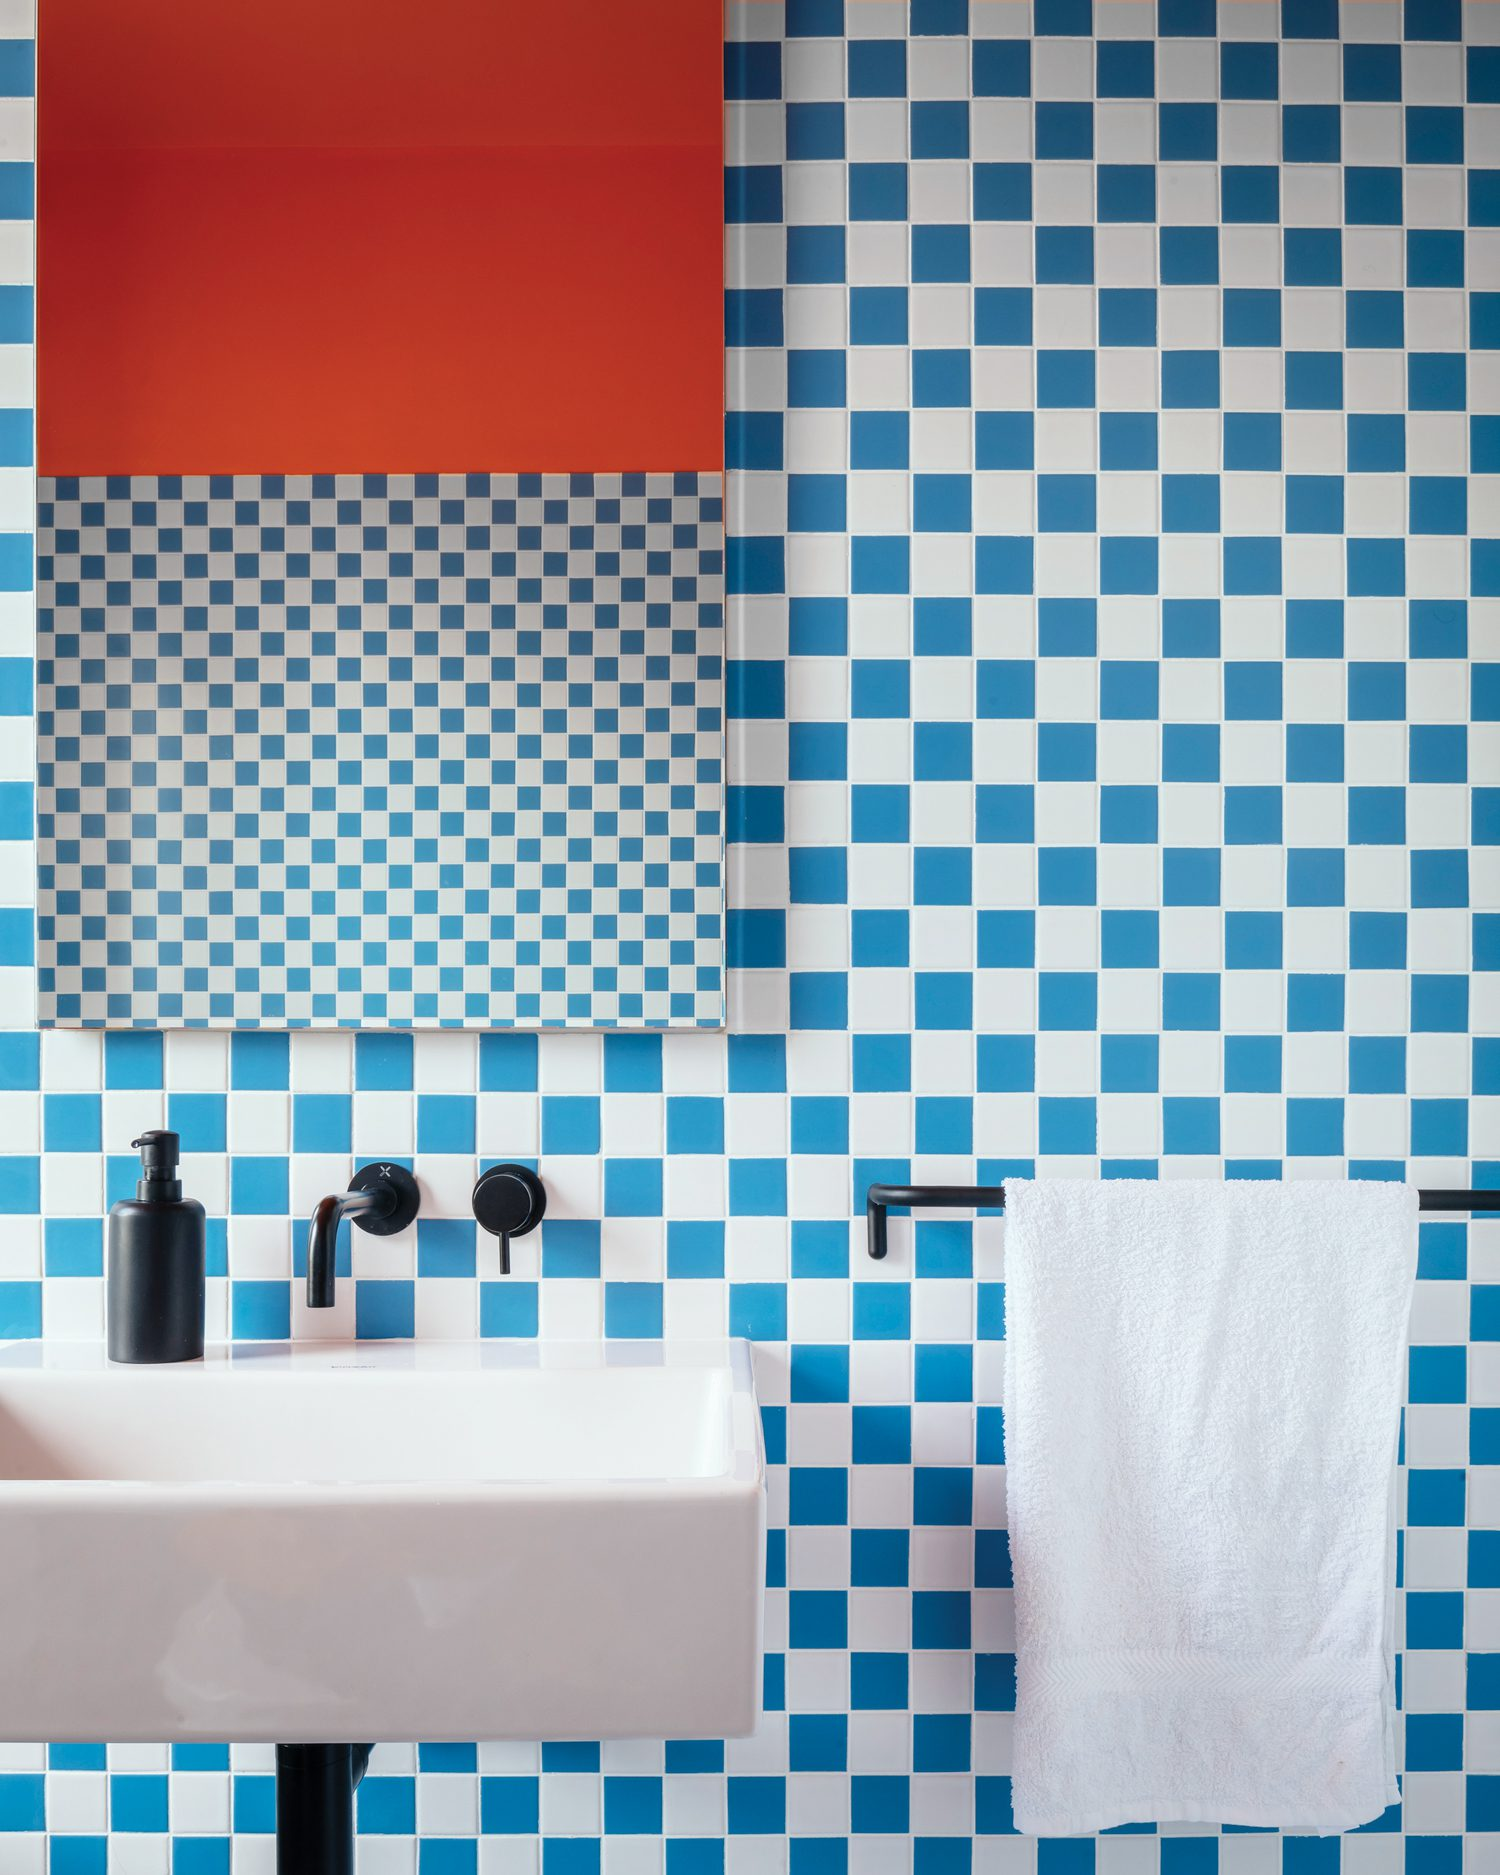 Bathroom tile tips the hat to the original blue-and-white checkerboard uncovered on the main bedroom hearth.